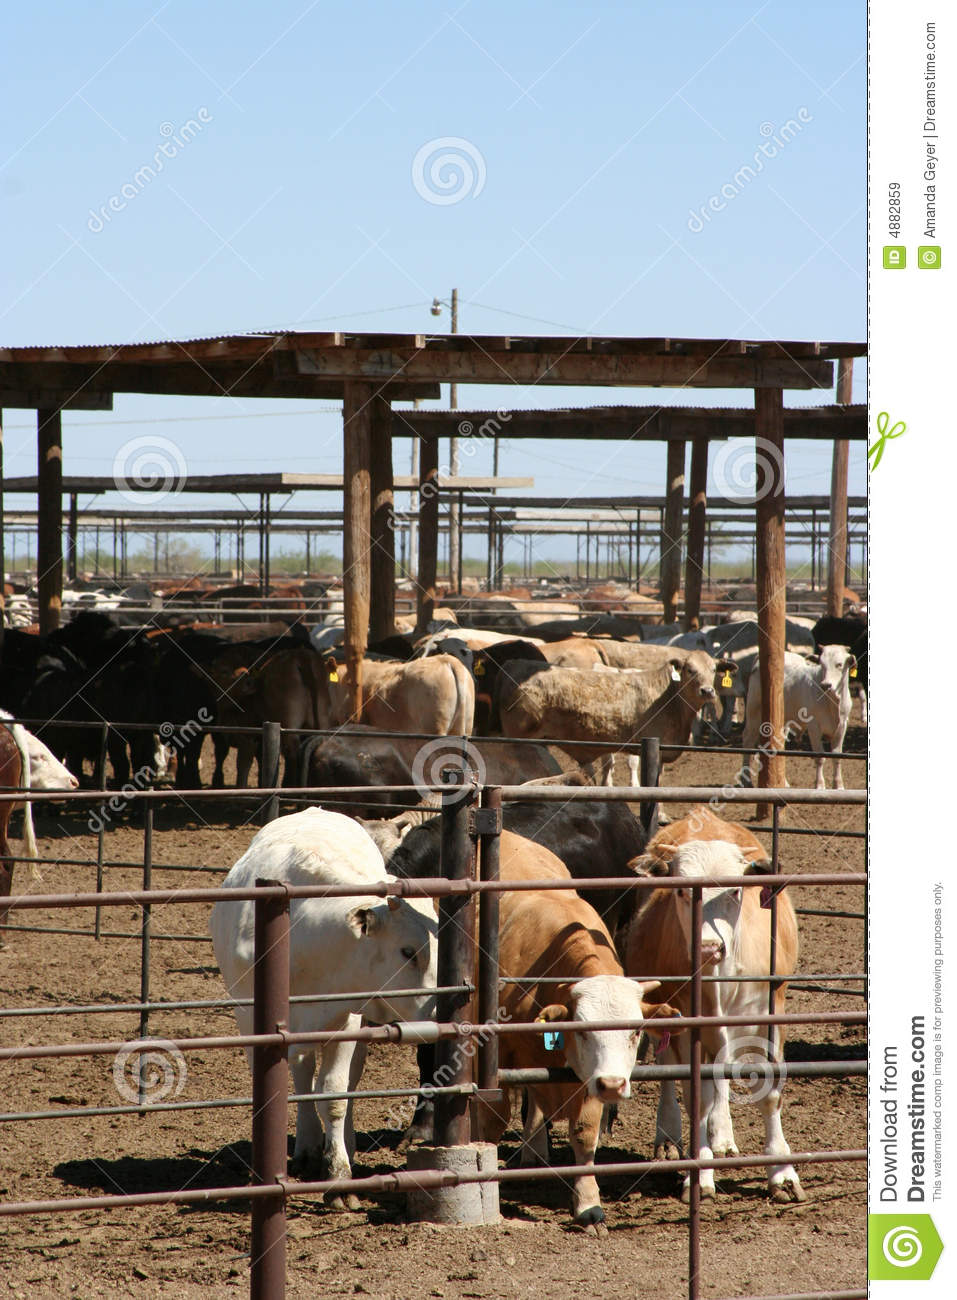 Starting Cattle Fattening Farming Business Plan (PDF)